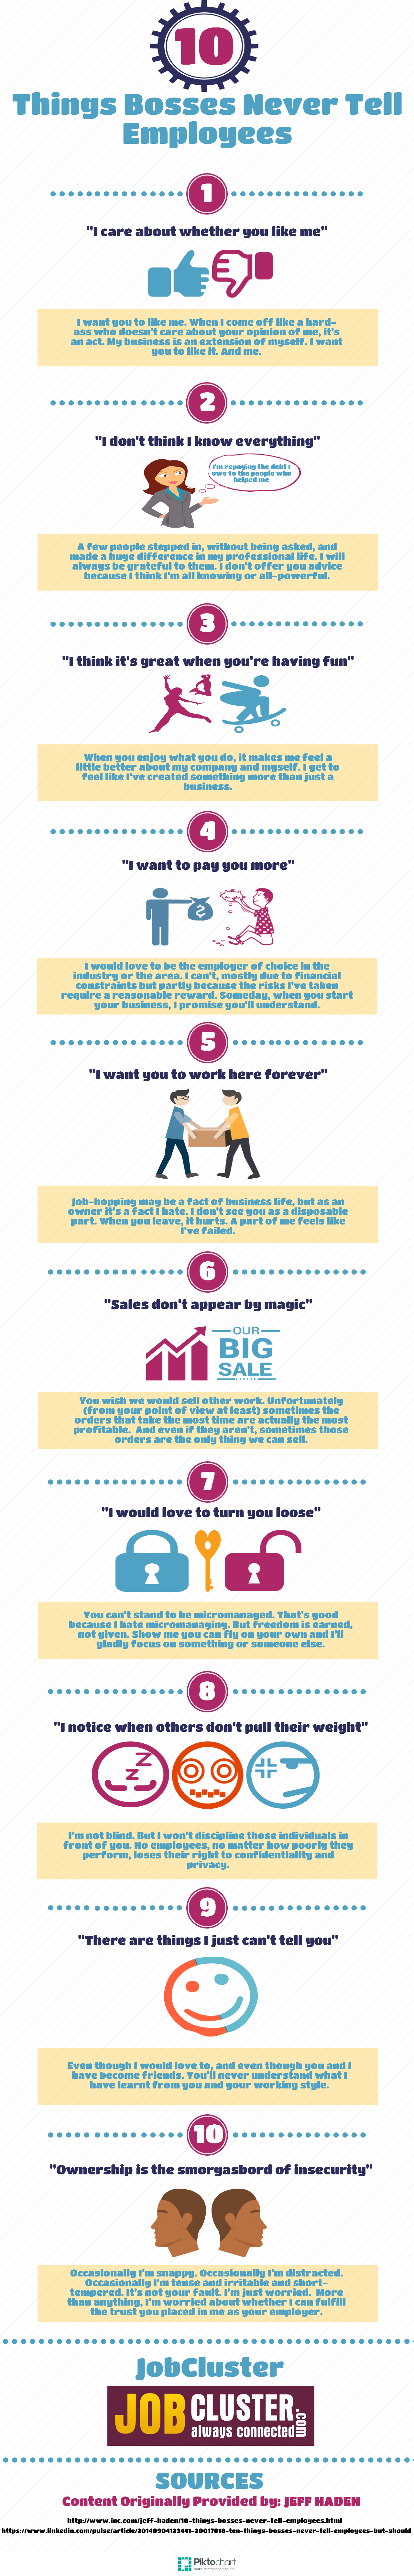 10 things bosses never tell employees- infographic